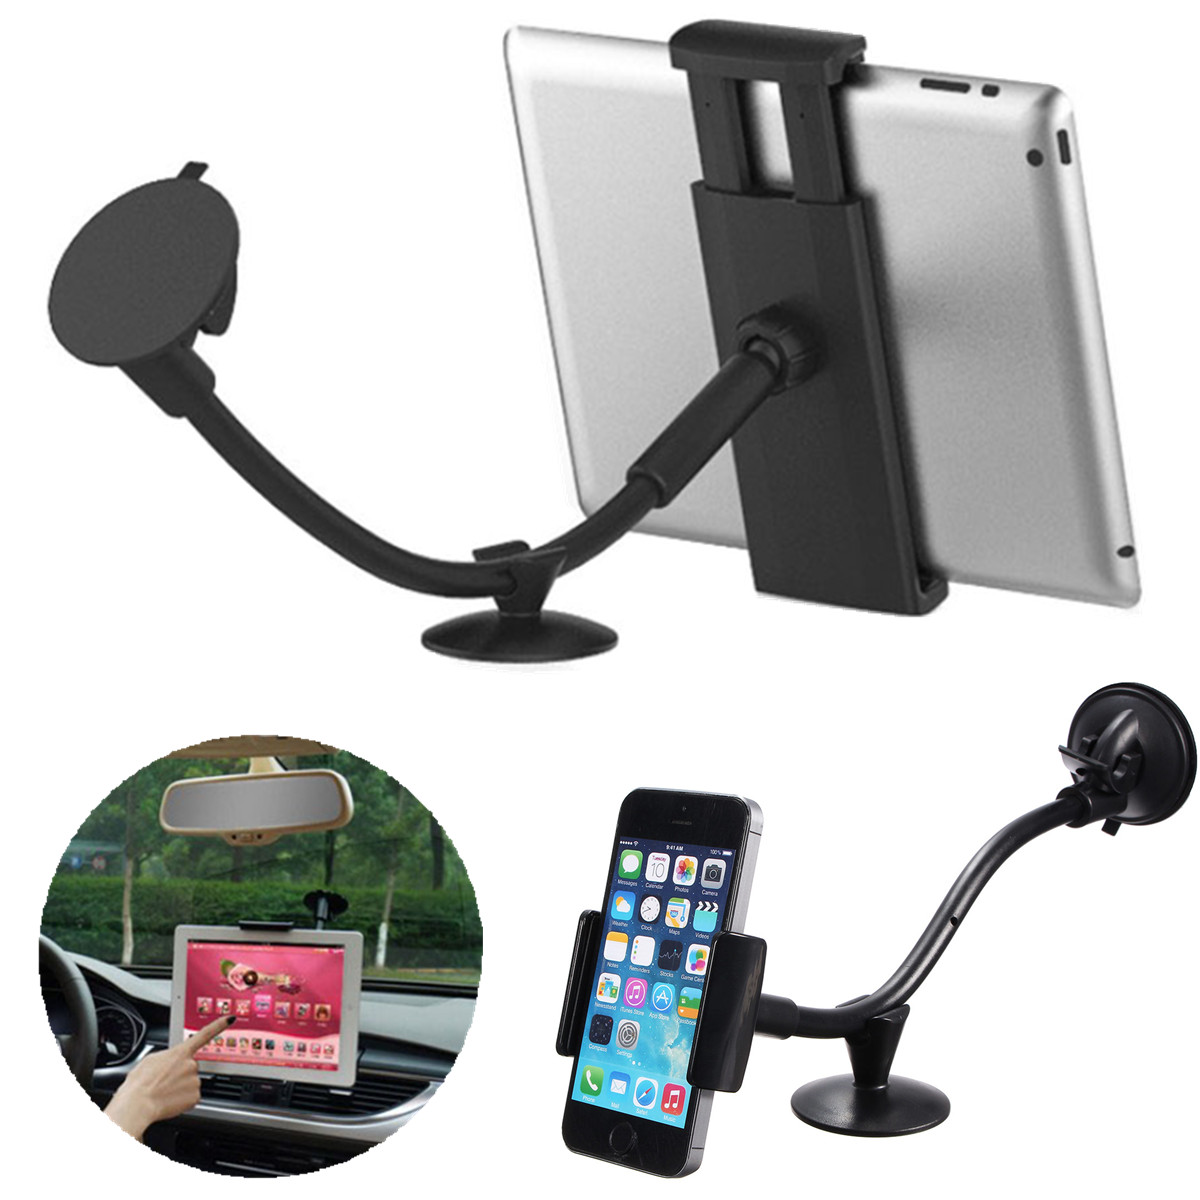 Mobile Tablet Stand Holder Stand For Mobile